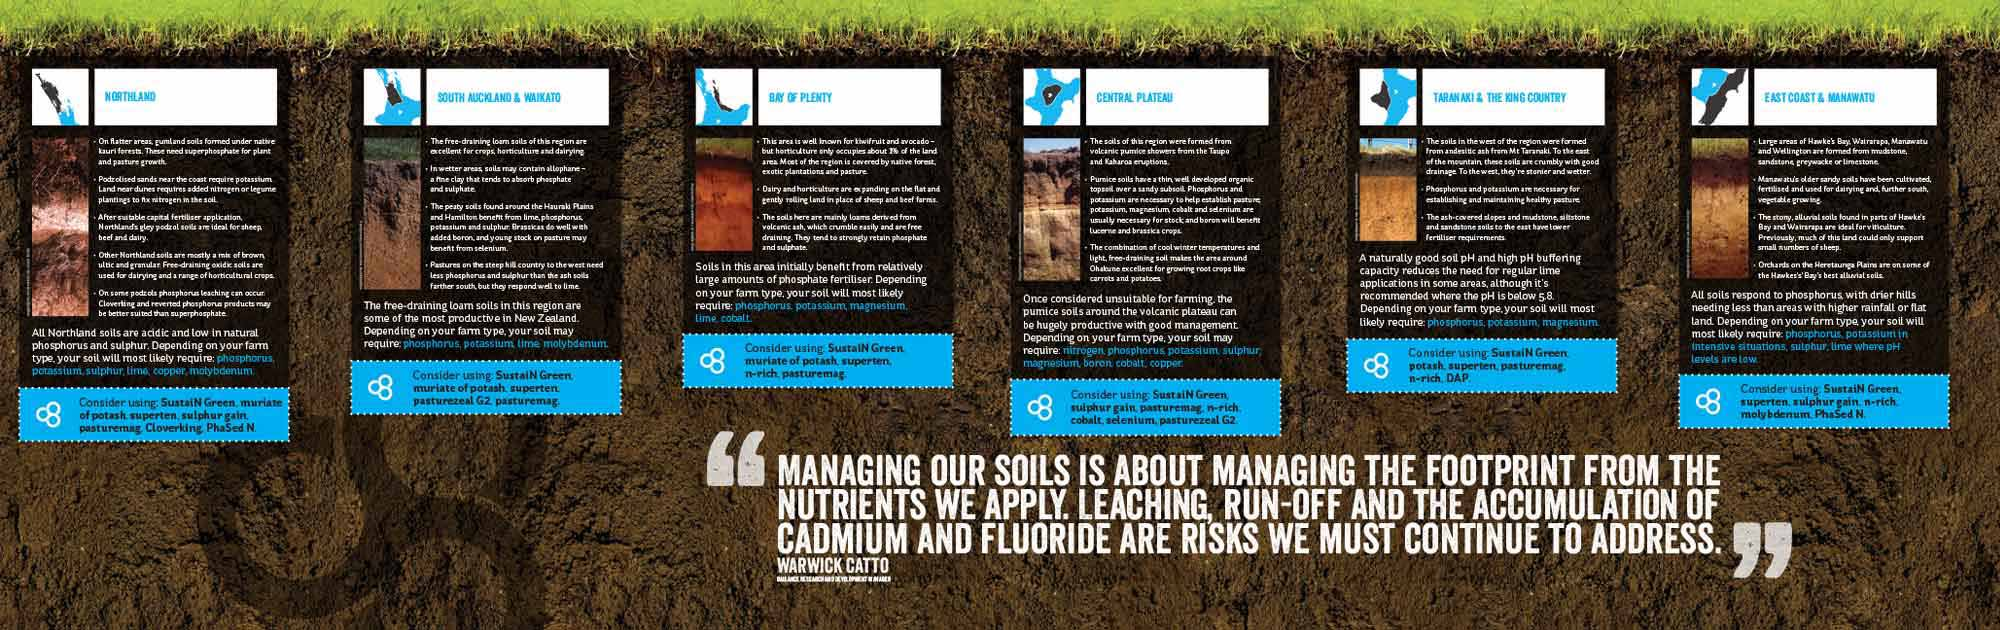 Creating the best soil on earth display image.